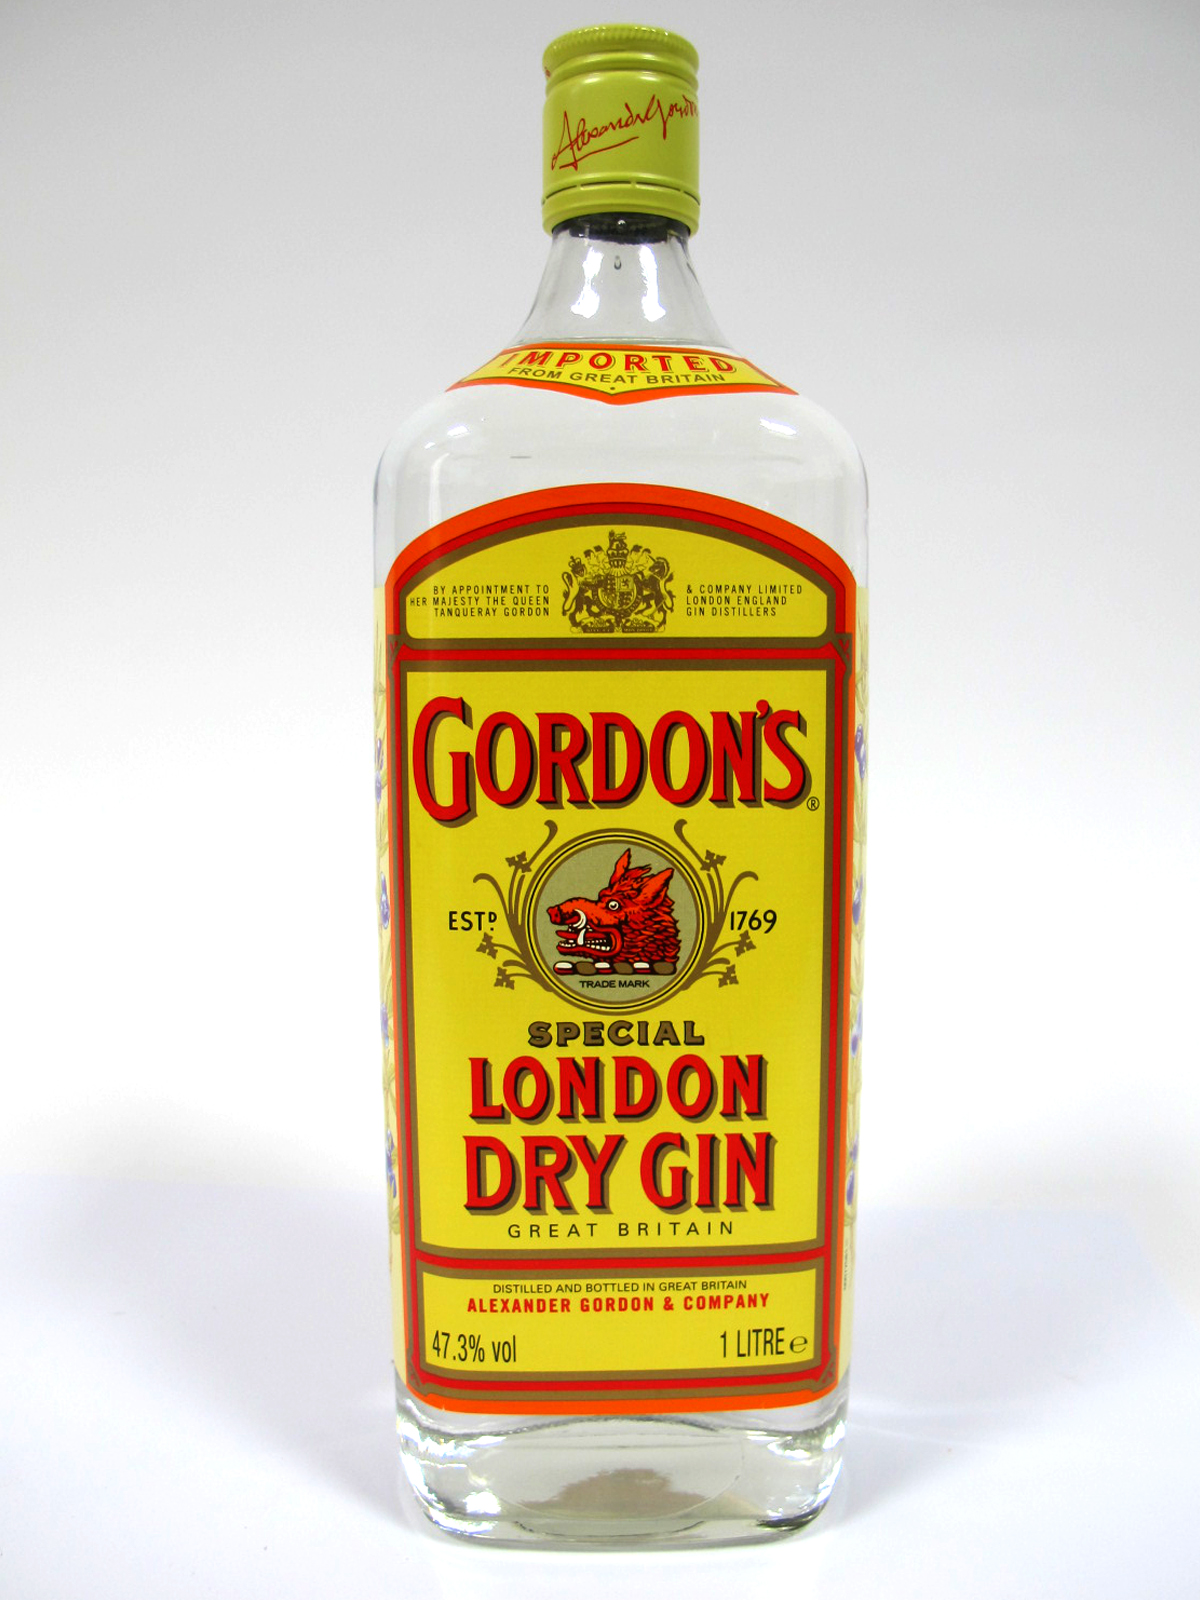 Lot 51 - Gin - Gordon's Special London Dry Gin, 1 litre, 47.3% Vol.